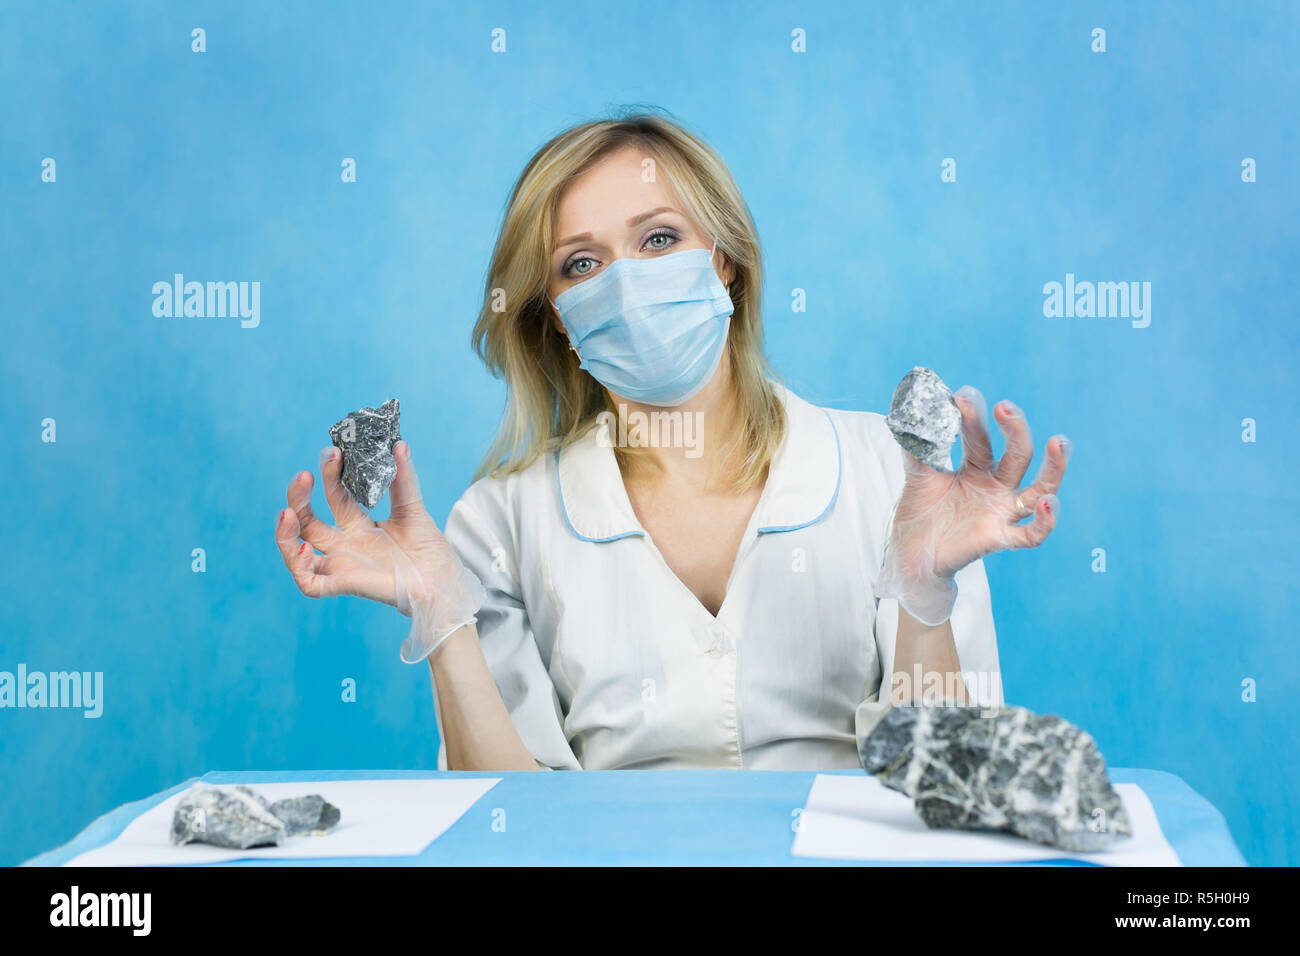 A woman lab worker examines stones for anilization, the content of harmful asbestos. Stock Photo